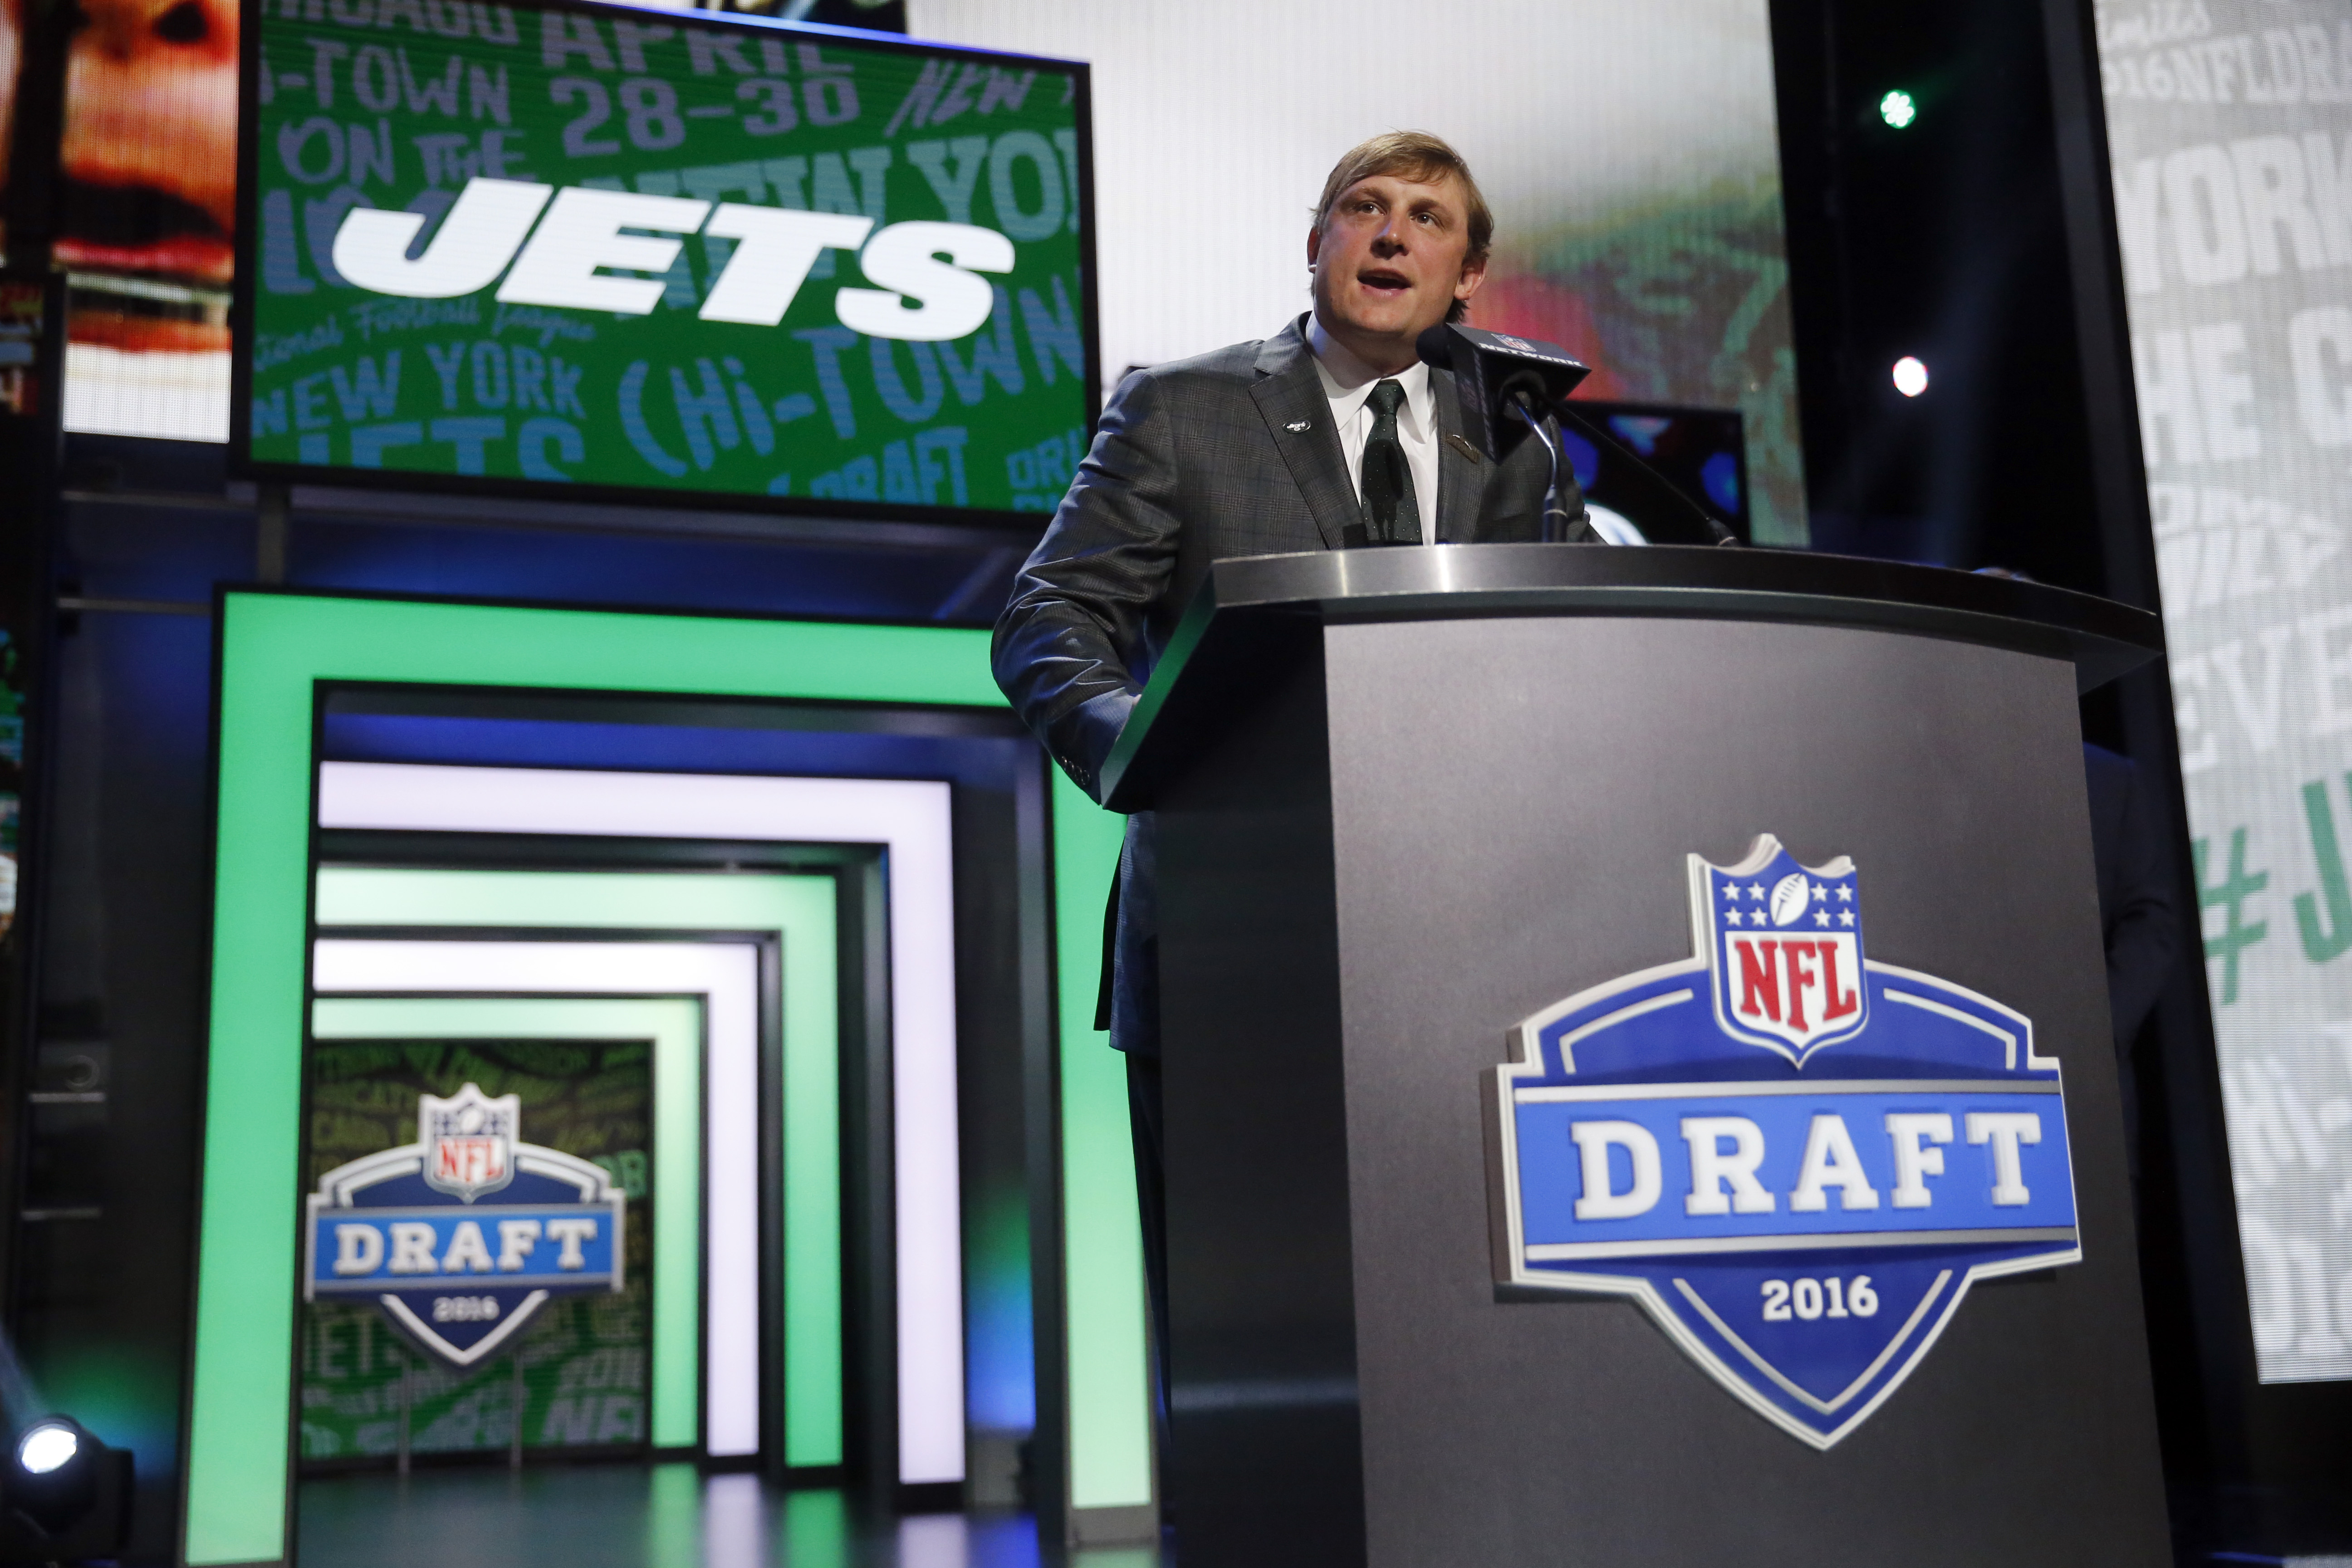 Former NFL player Chad Pennington announces that the New York Jets selects Penn States Christian Hackenberg as the 51st pick in the second round of the 2016 NFL football draft, Friday, April 29, 2016, in Chicago. (AP Photo/Charles Rex Arbogast)